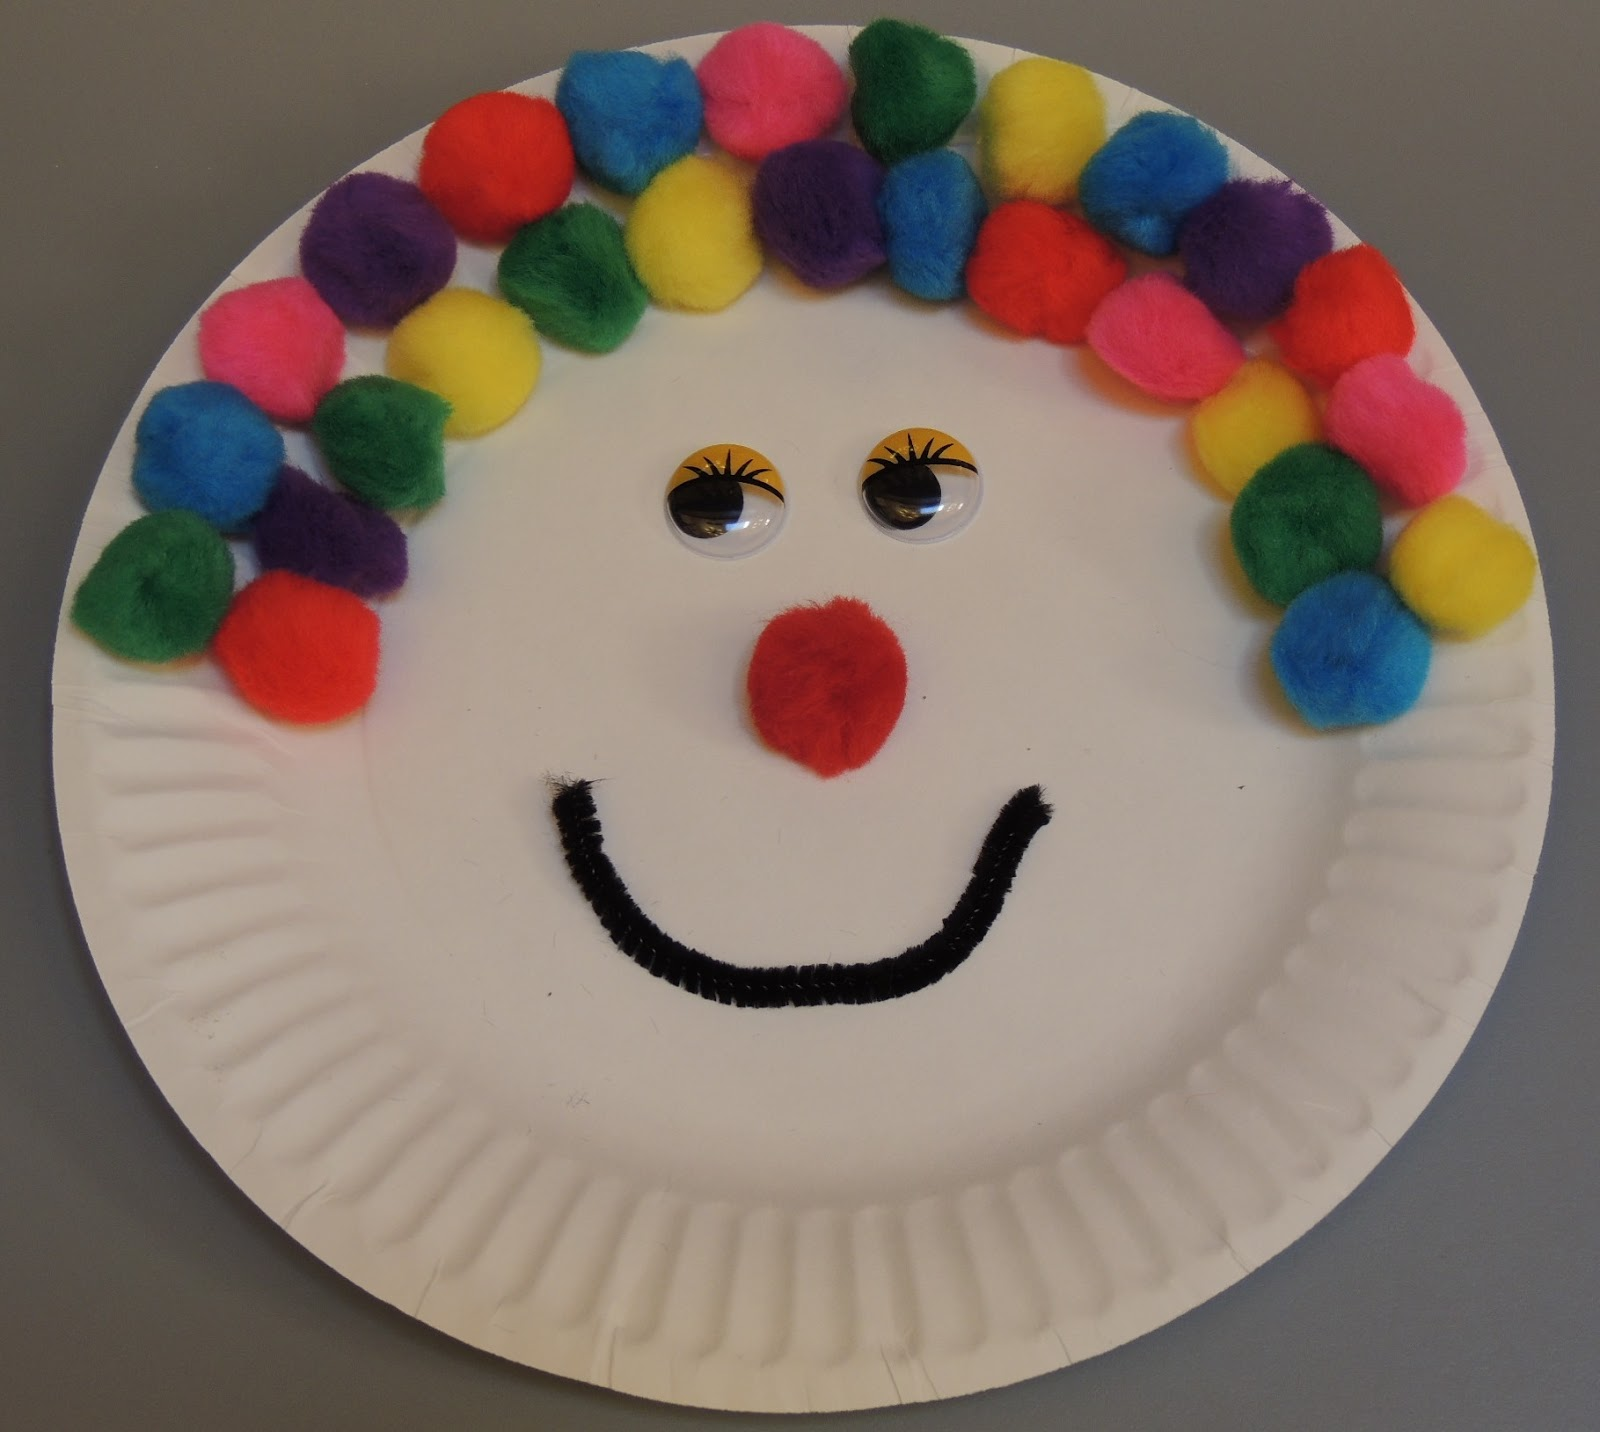 Paper Plate Clown & Child Care Basics Resource Blog: Paper Plate Clown